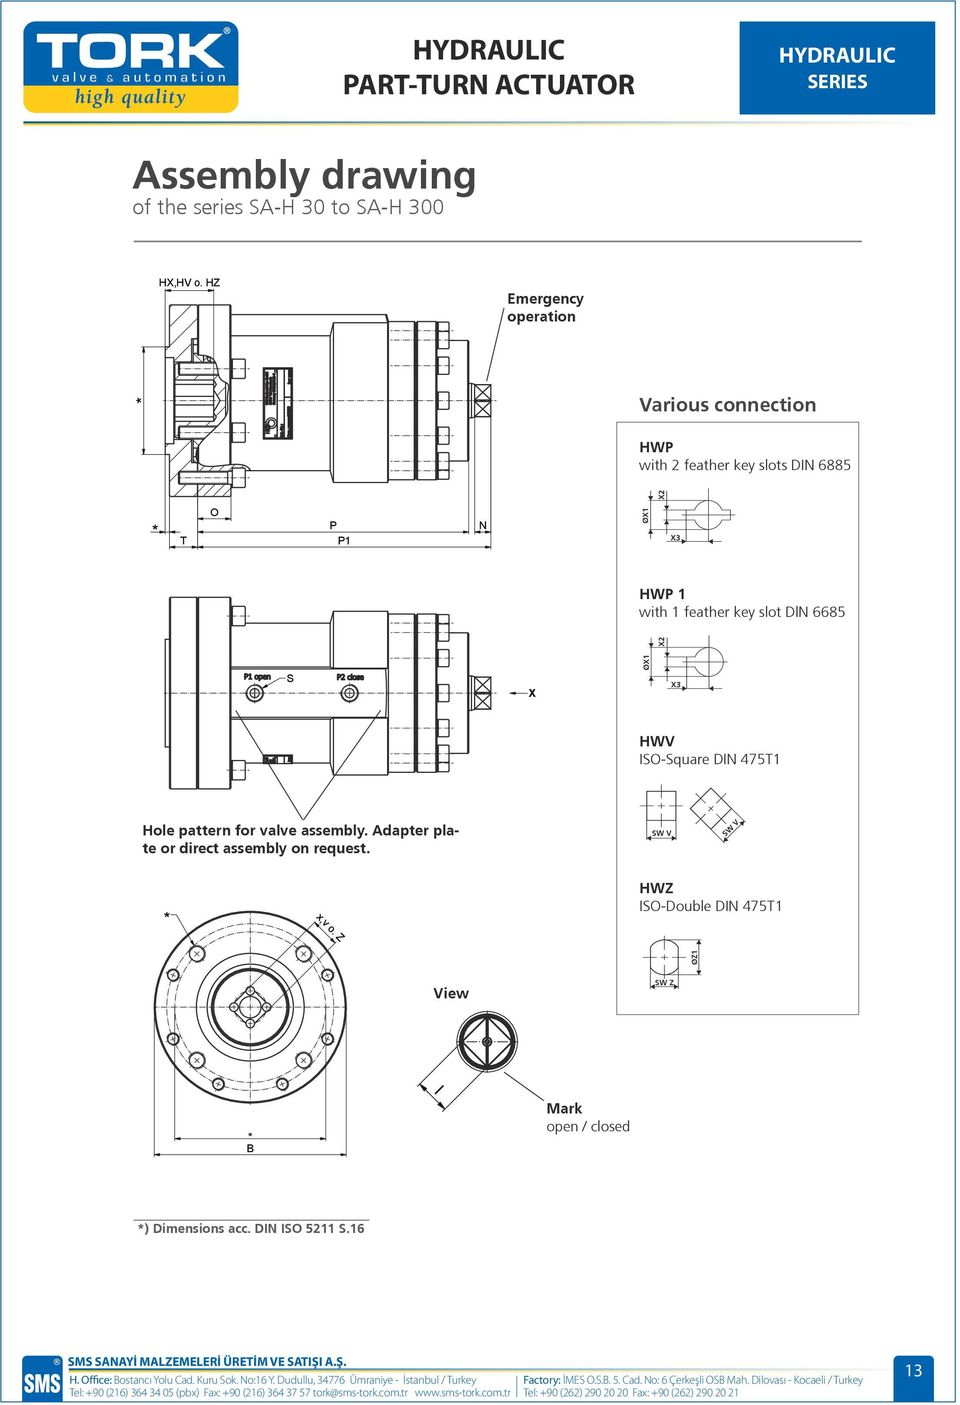 X3 SW V I HWV ISO-Square X3 SW Z DIN 475T1 X3 ØX1 SW V X2 X2 ØZ1 ØX1 P P1 N Hole pattern for valve assembly. Adapter plate or direct assembly on request.